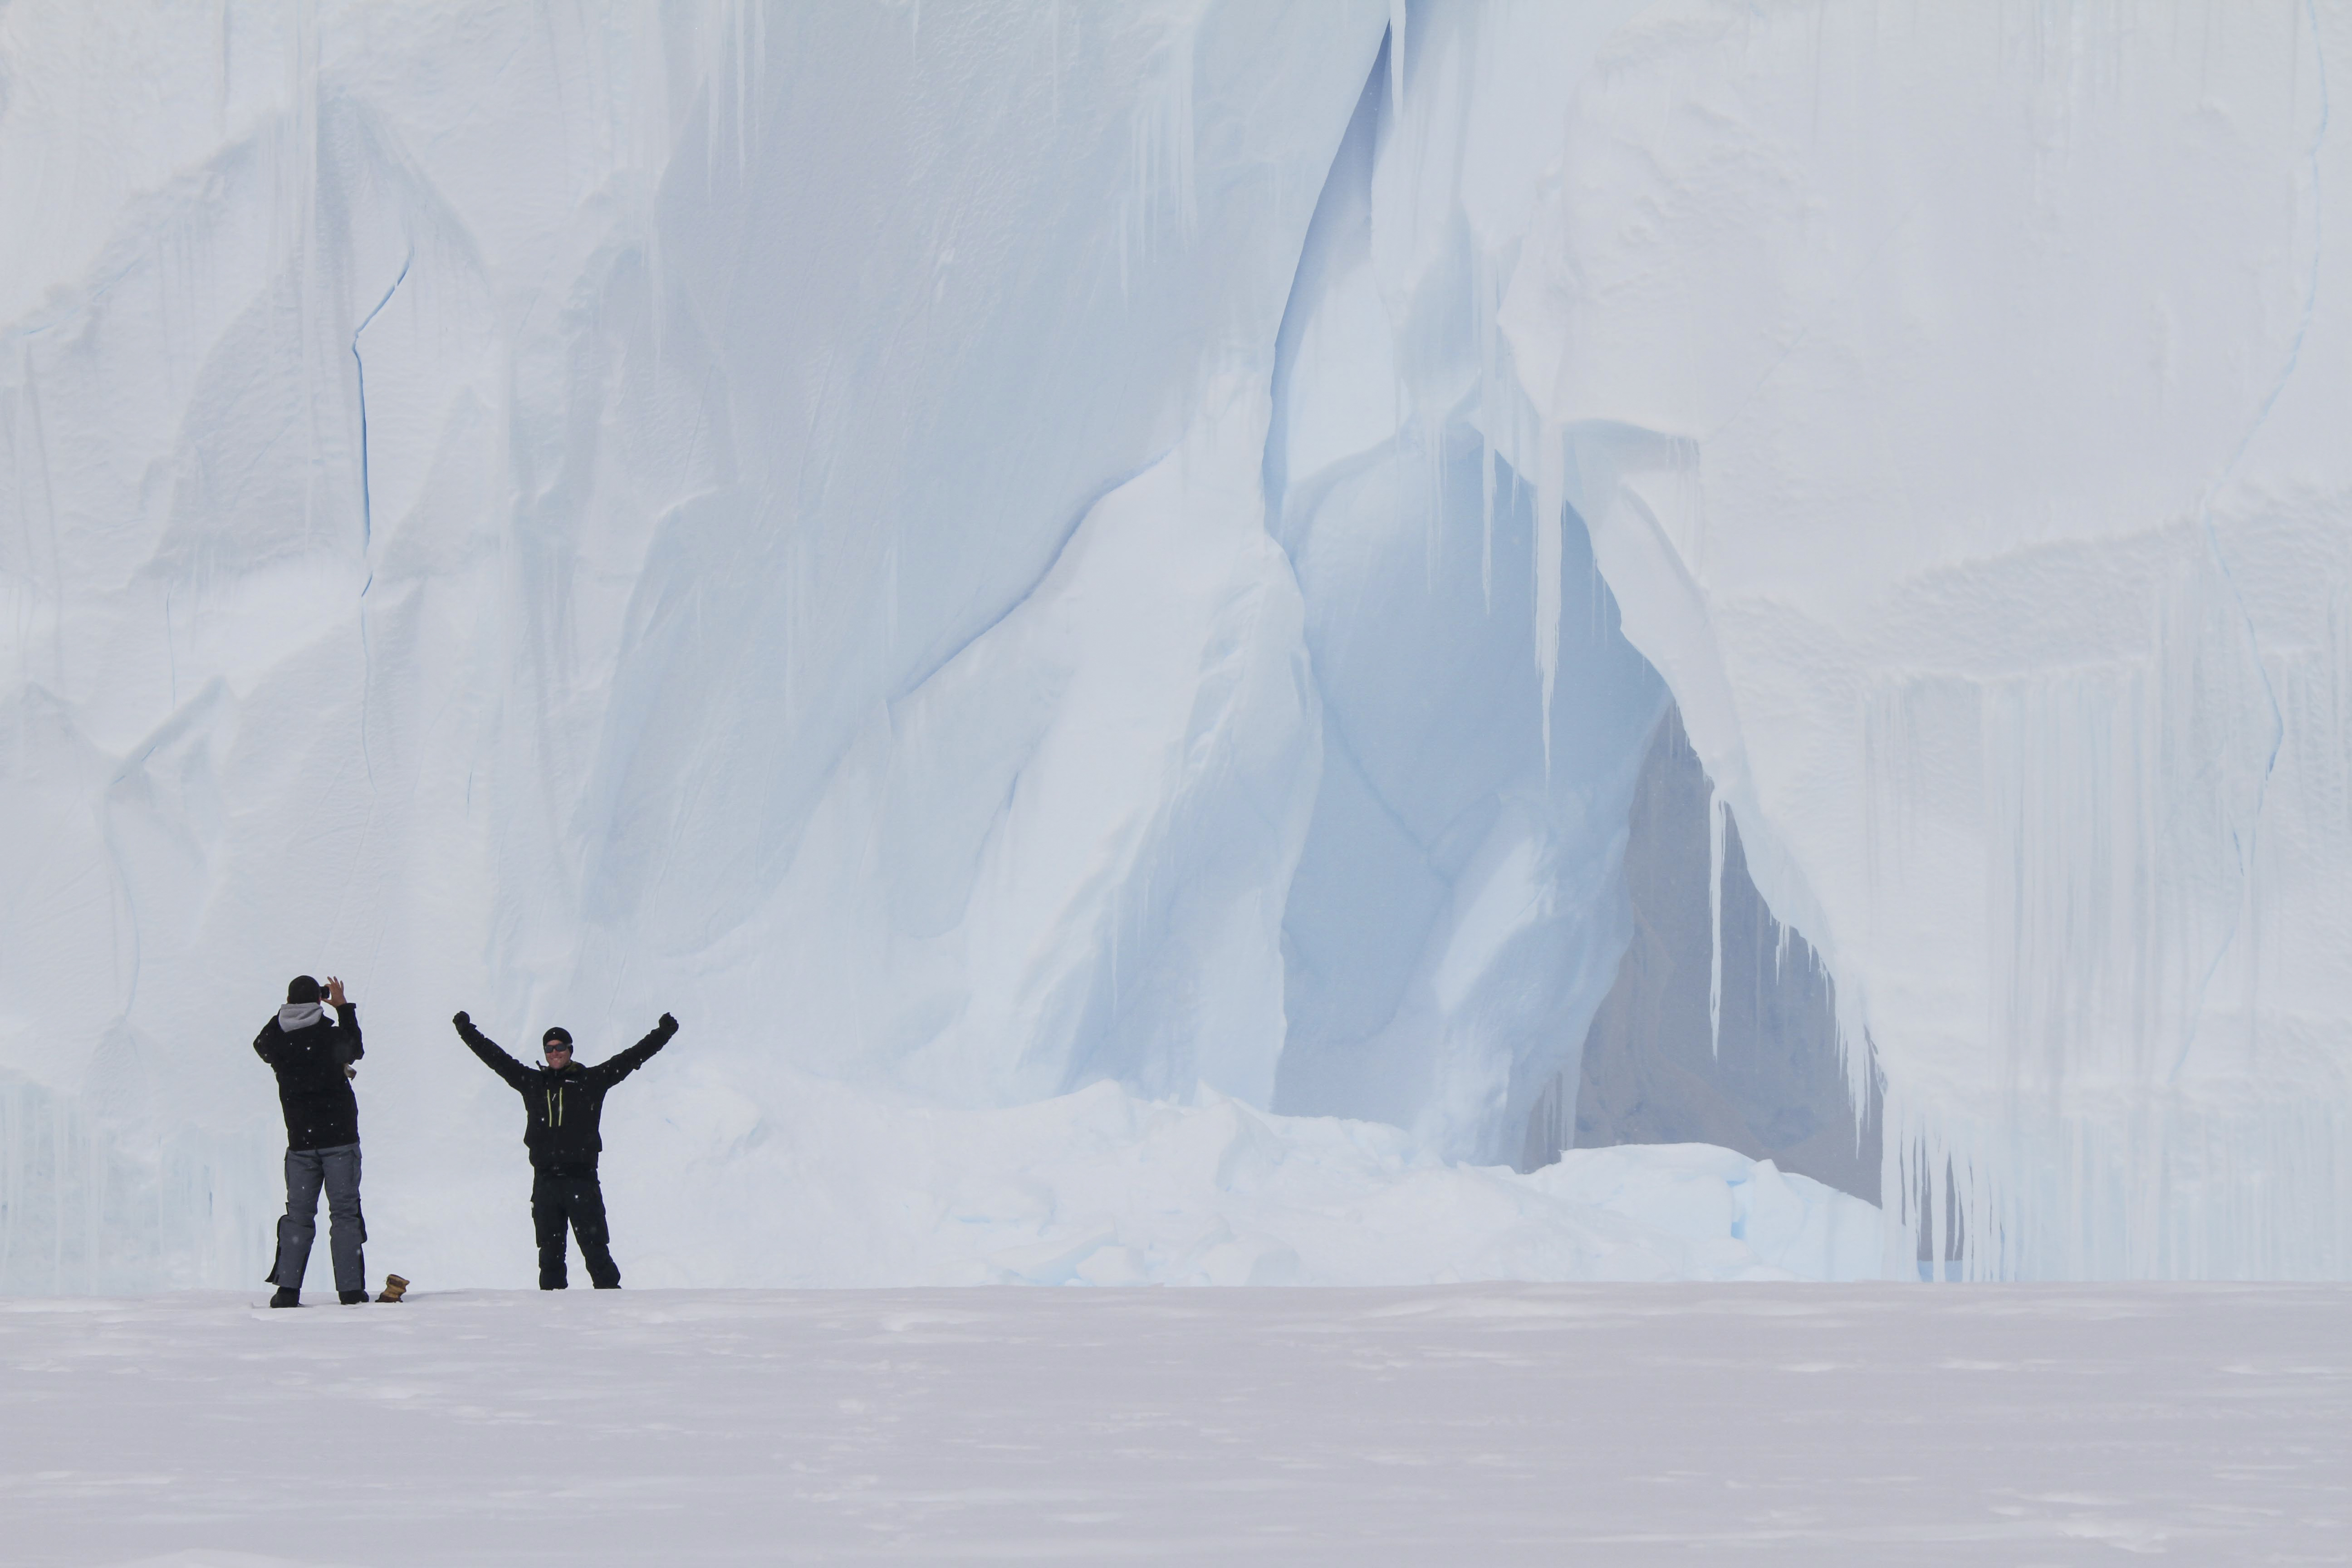 Man in front of a gigant ice cave